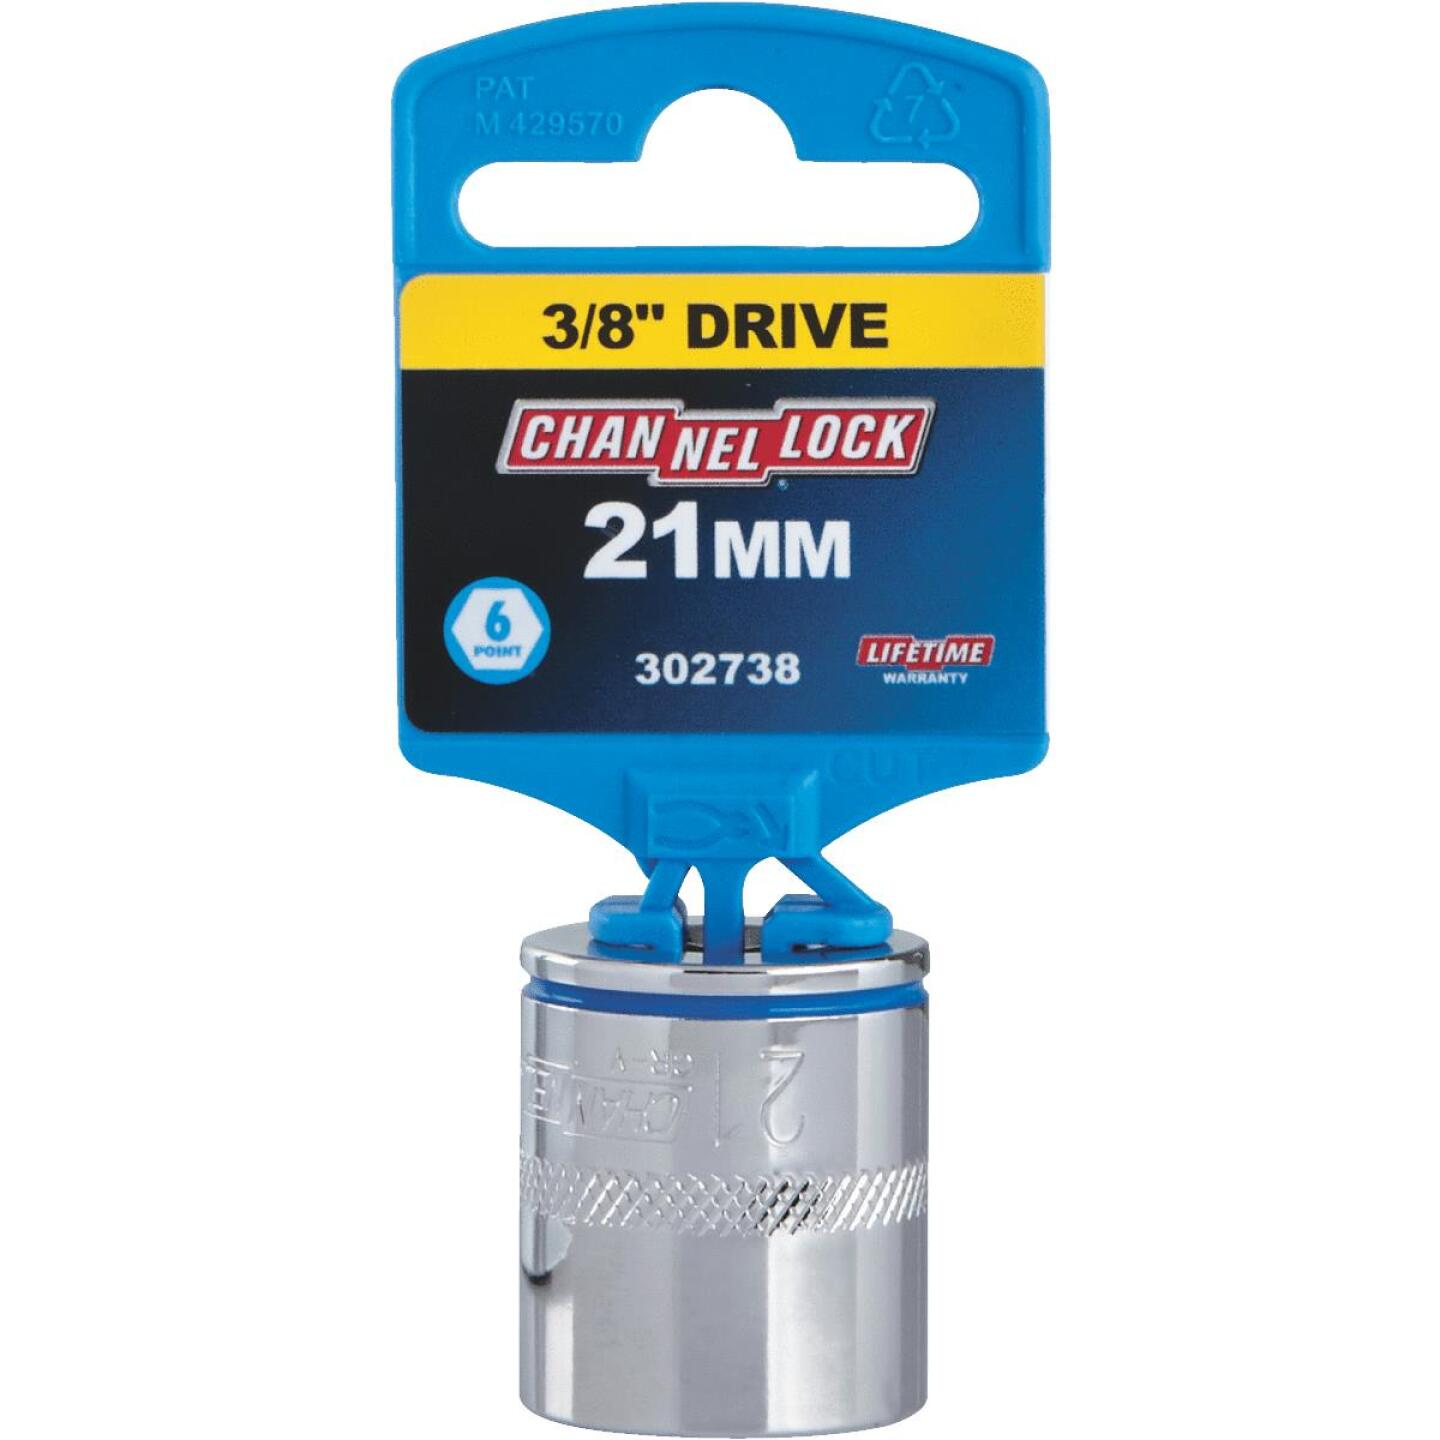 Channellock 3/8 In. Drive 21 mm 6-Point Shallow Metric Socket Image 2